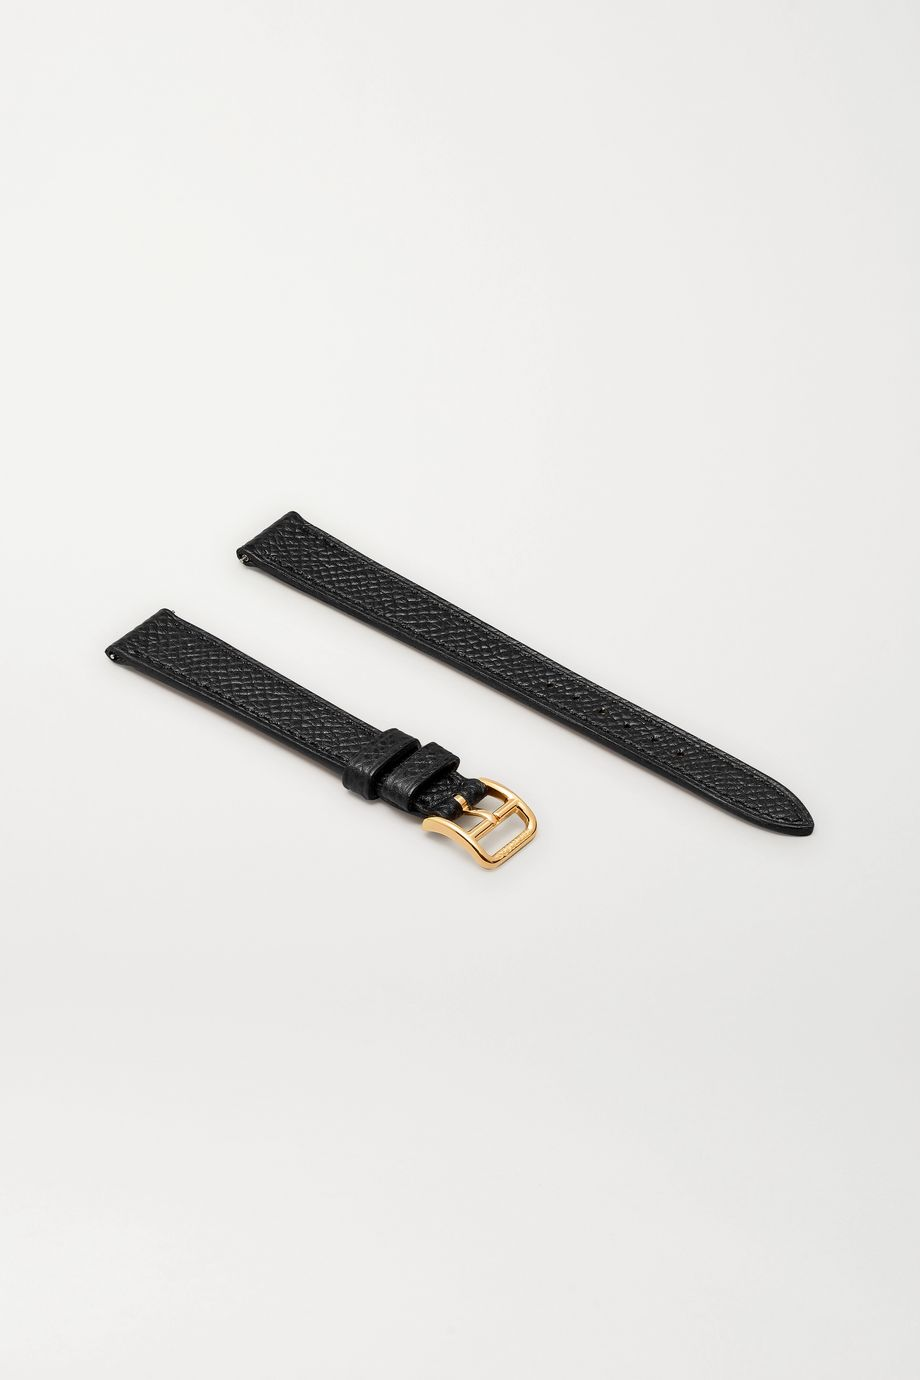 Hermès Timepieces Heure H 17.2mm leather watch strap